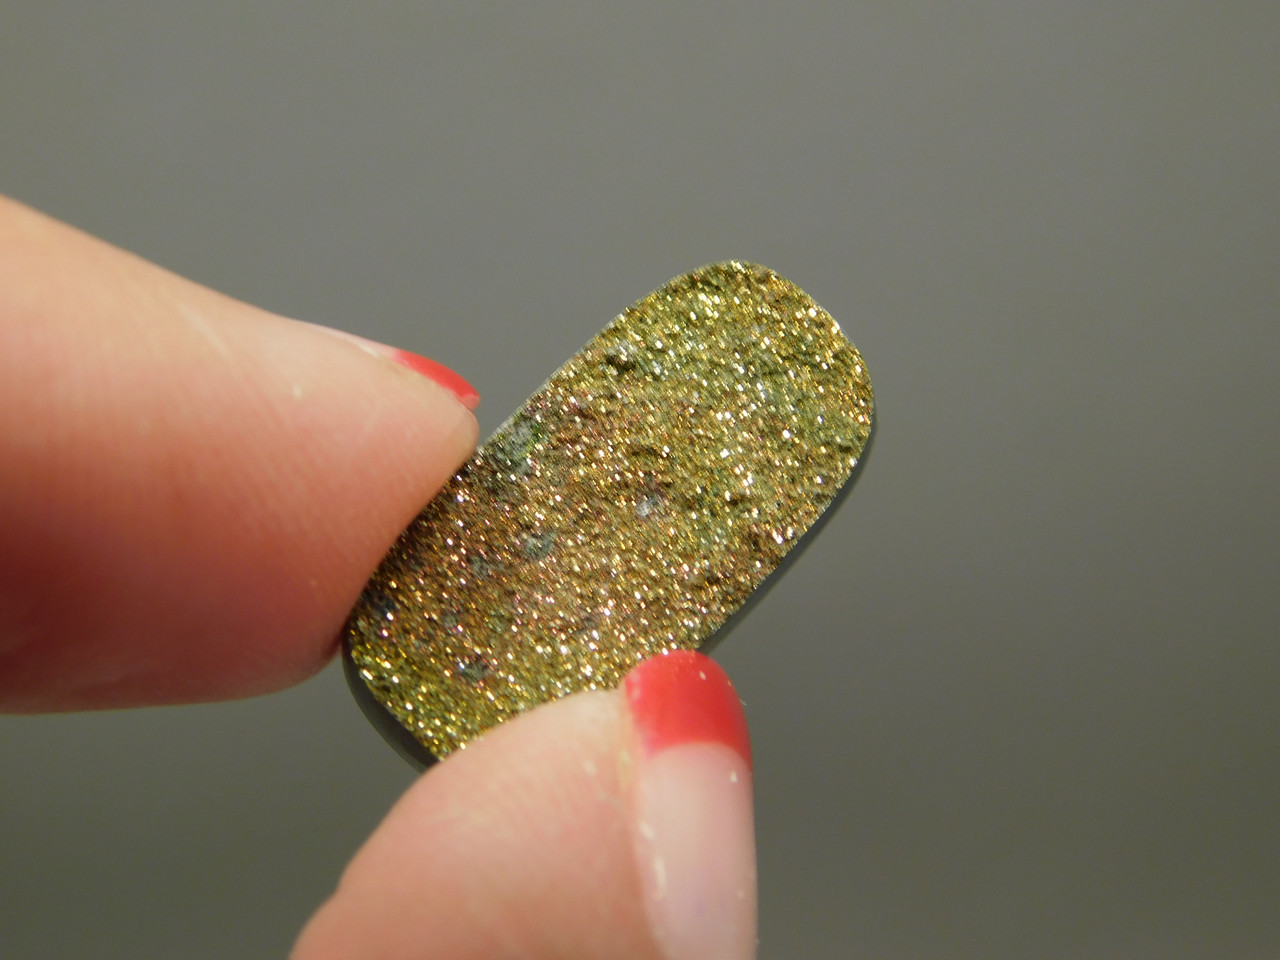 Iridescent Pyrite Sparkling Stone Cabochon Jewelry Making Supplies #3